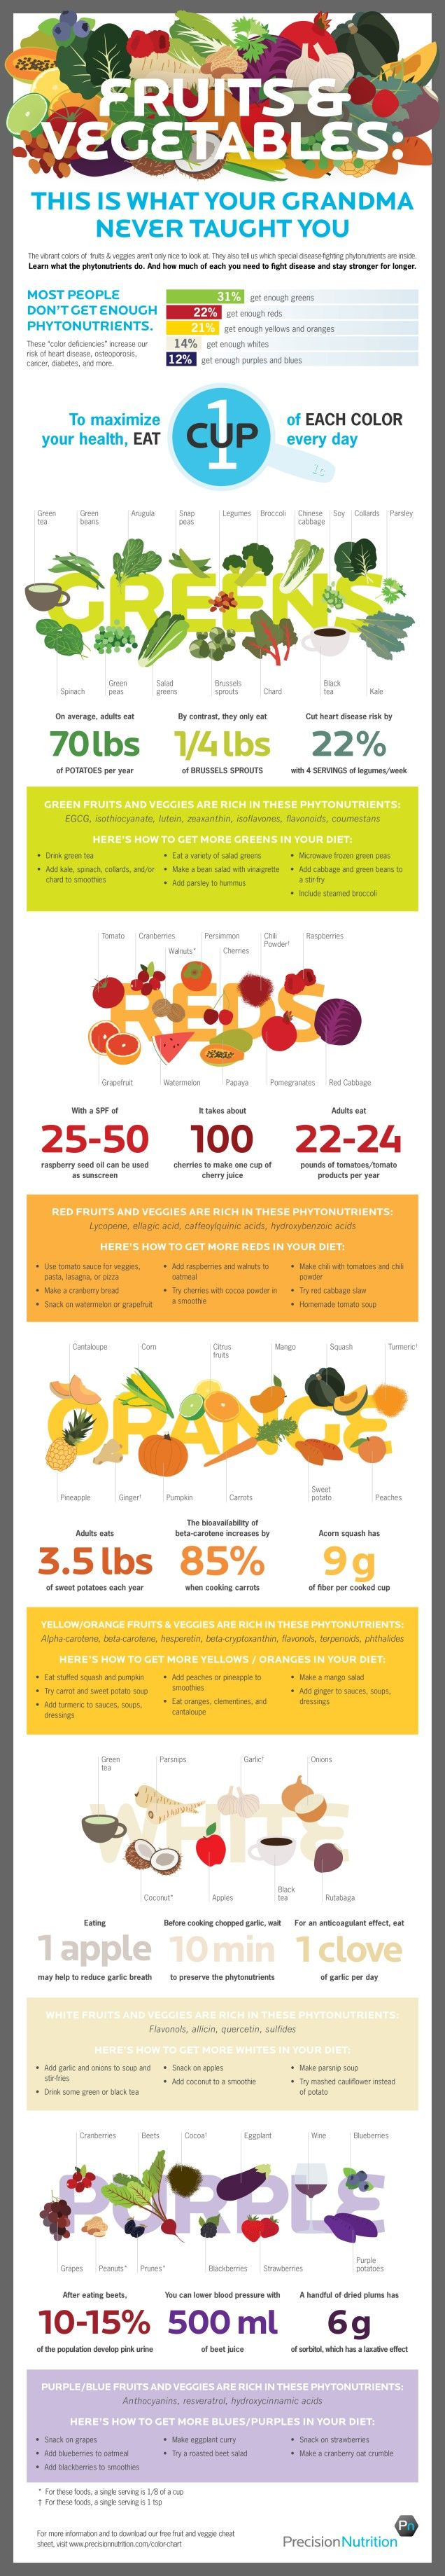 Keto Vegetable List: The Best Low-Carb Veggies to Add to Your Diet